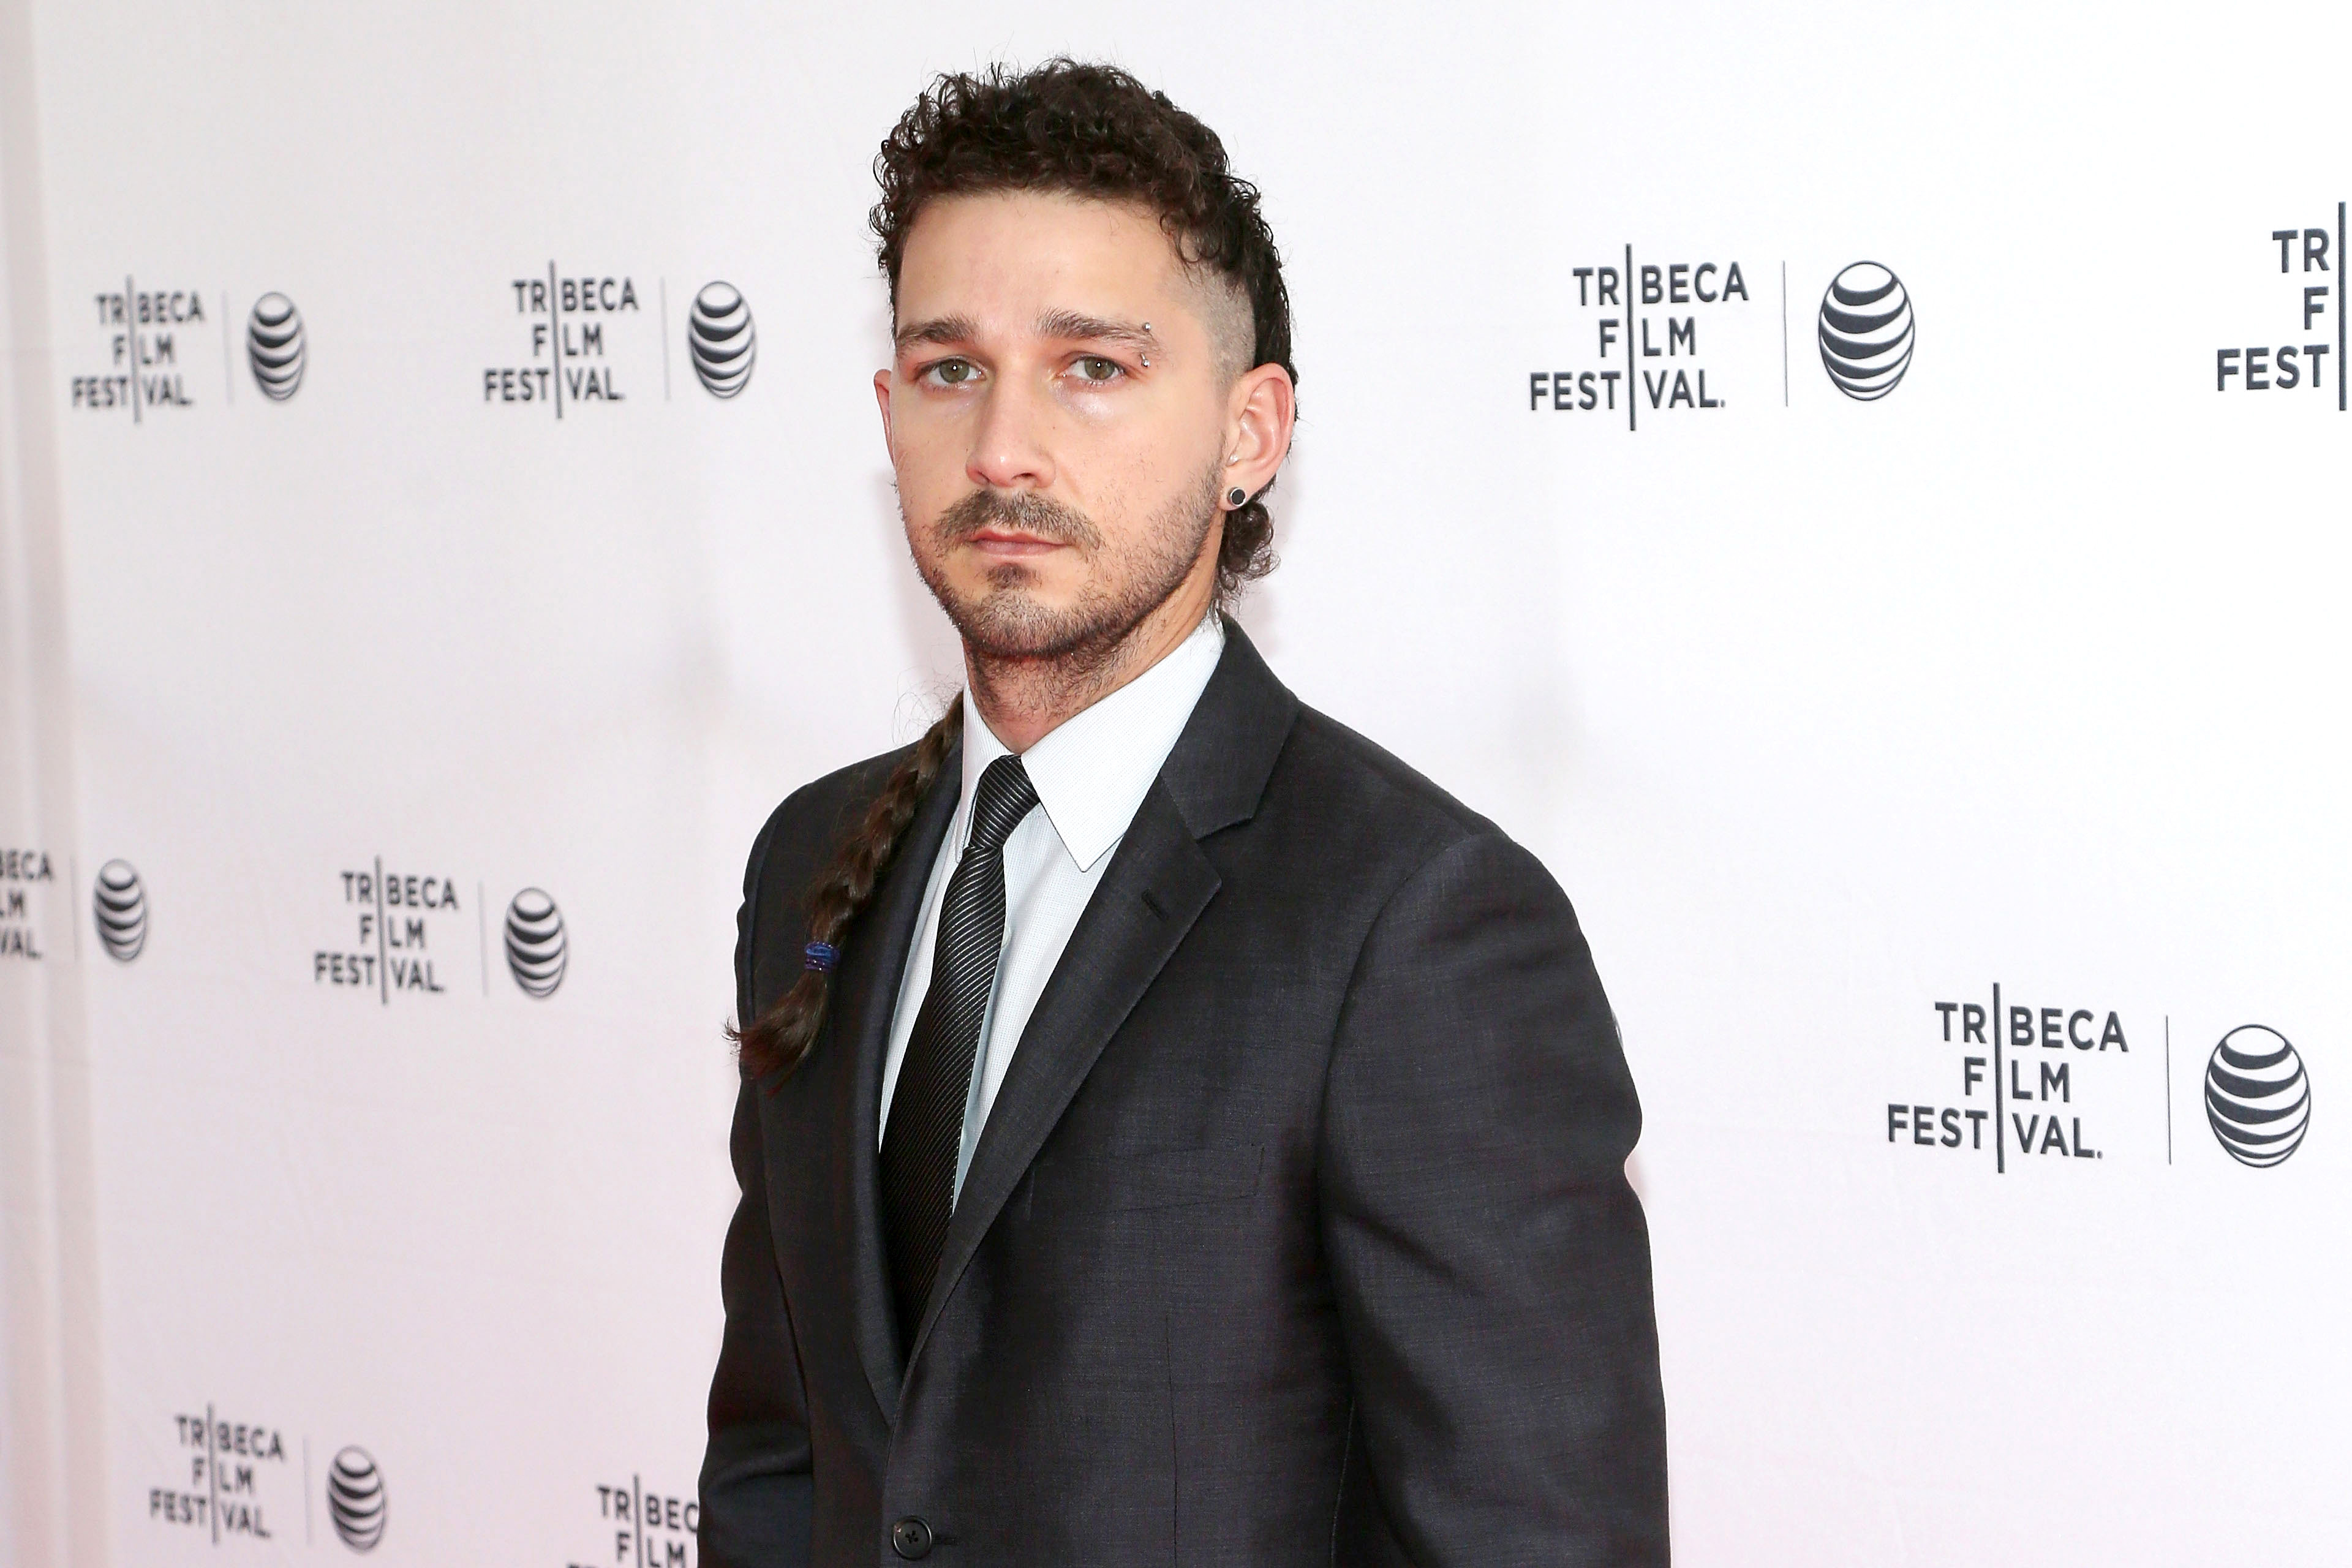 Executive producer Shia LaBeouf attends the world premiere of  LoveTrue  during the 2015 Tribeca Film Festival at SVA Theatre 2 on April 16, 2015 in New York City.